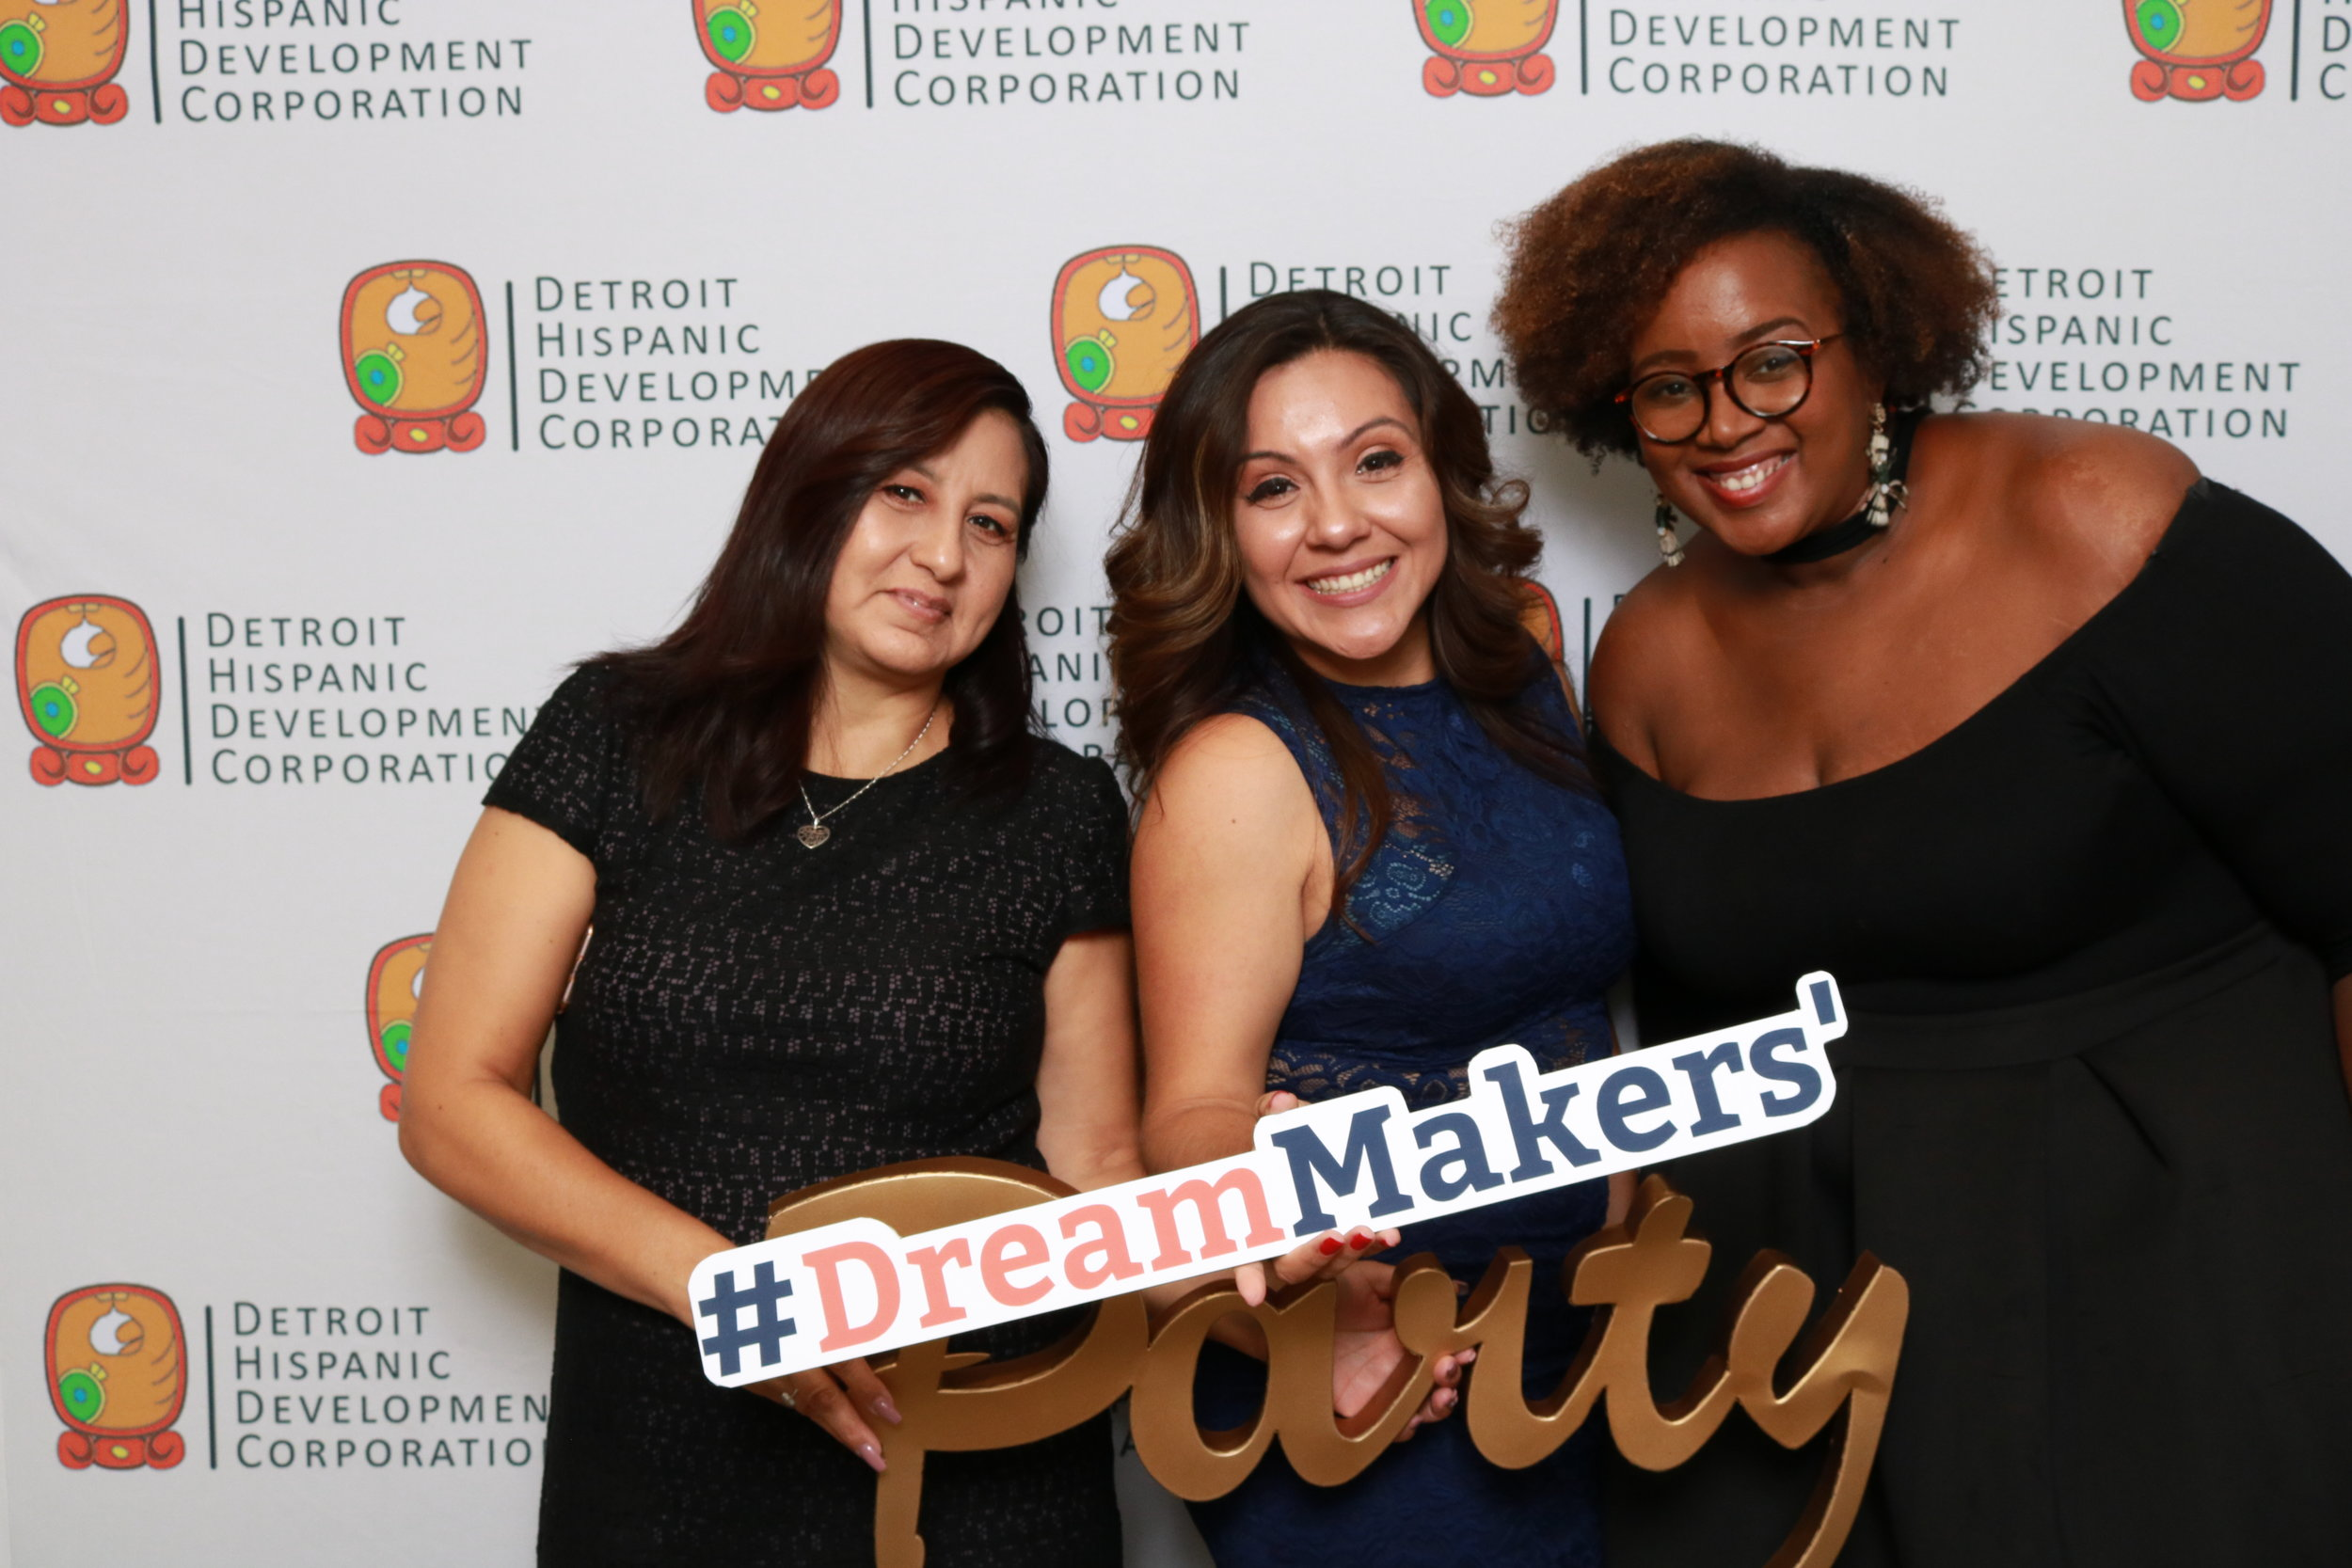 Detroit Hispanic Development Corporation's Dream Makers' Gala